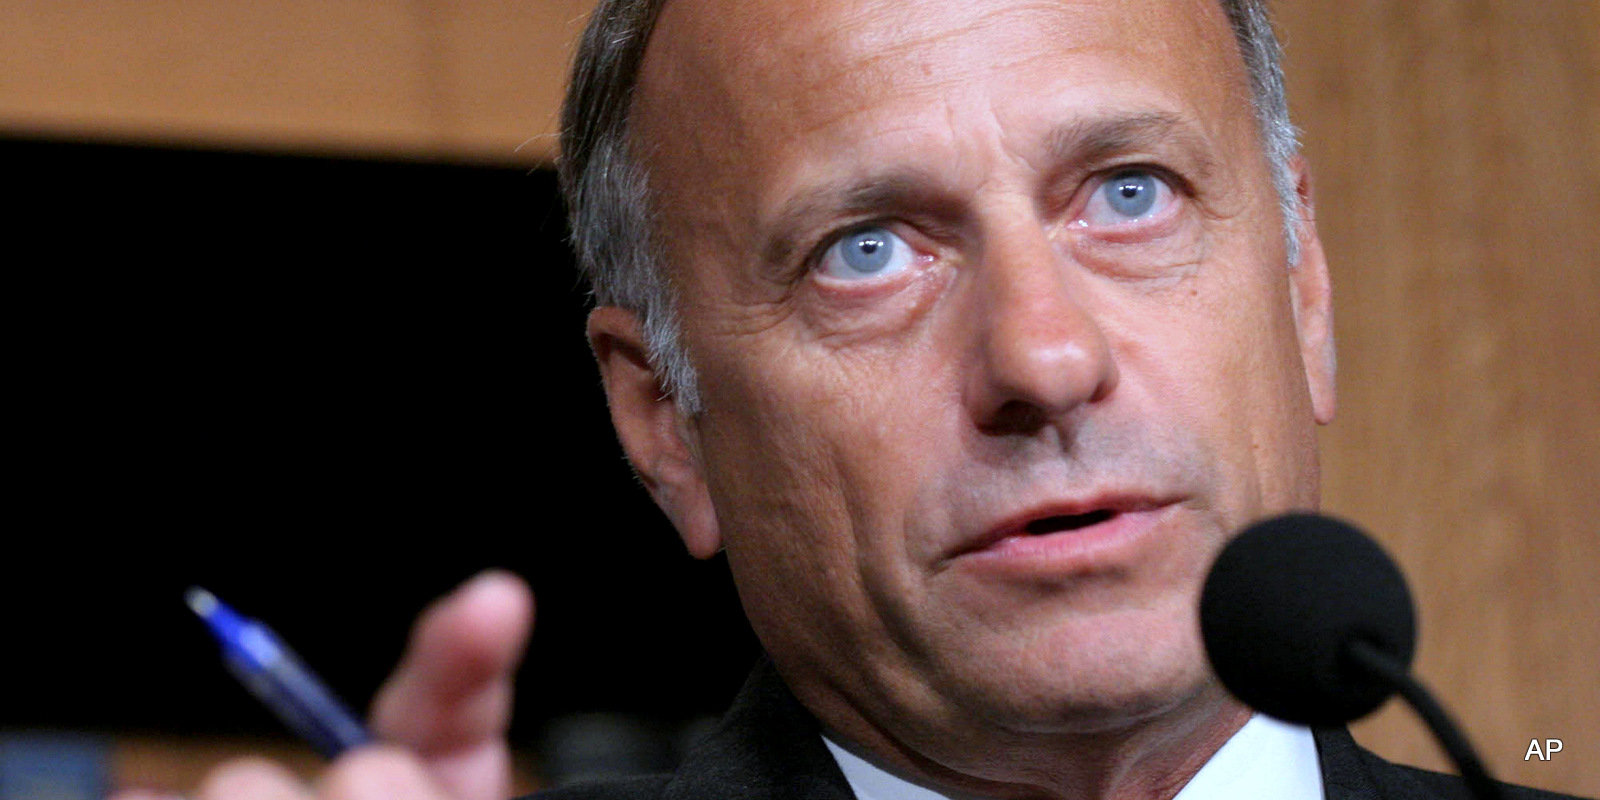 Rep. Steve King, R-Iowa, speaks to reporters on Capitol Hill in Washington.